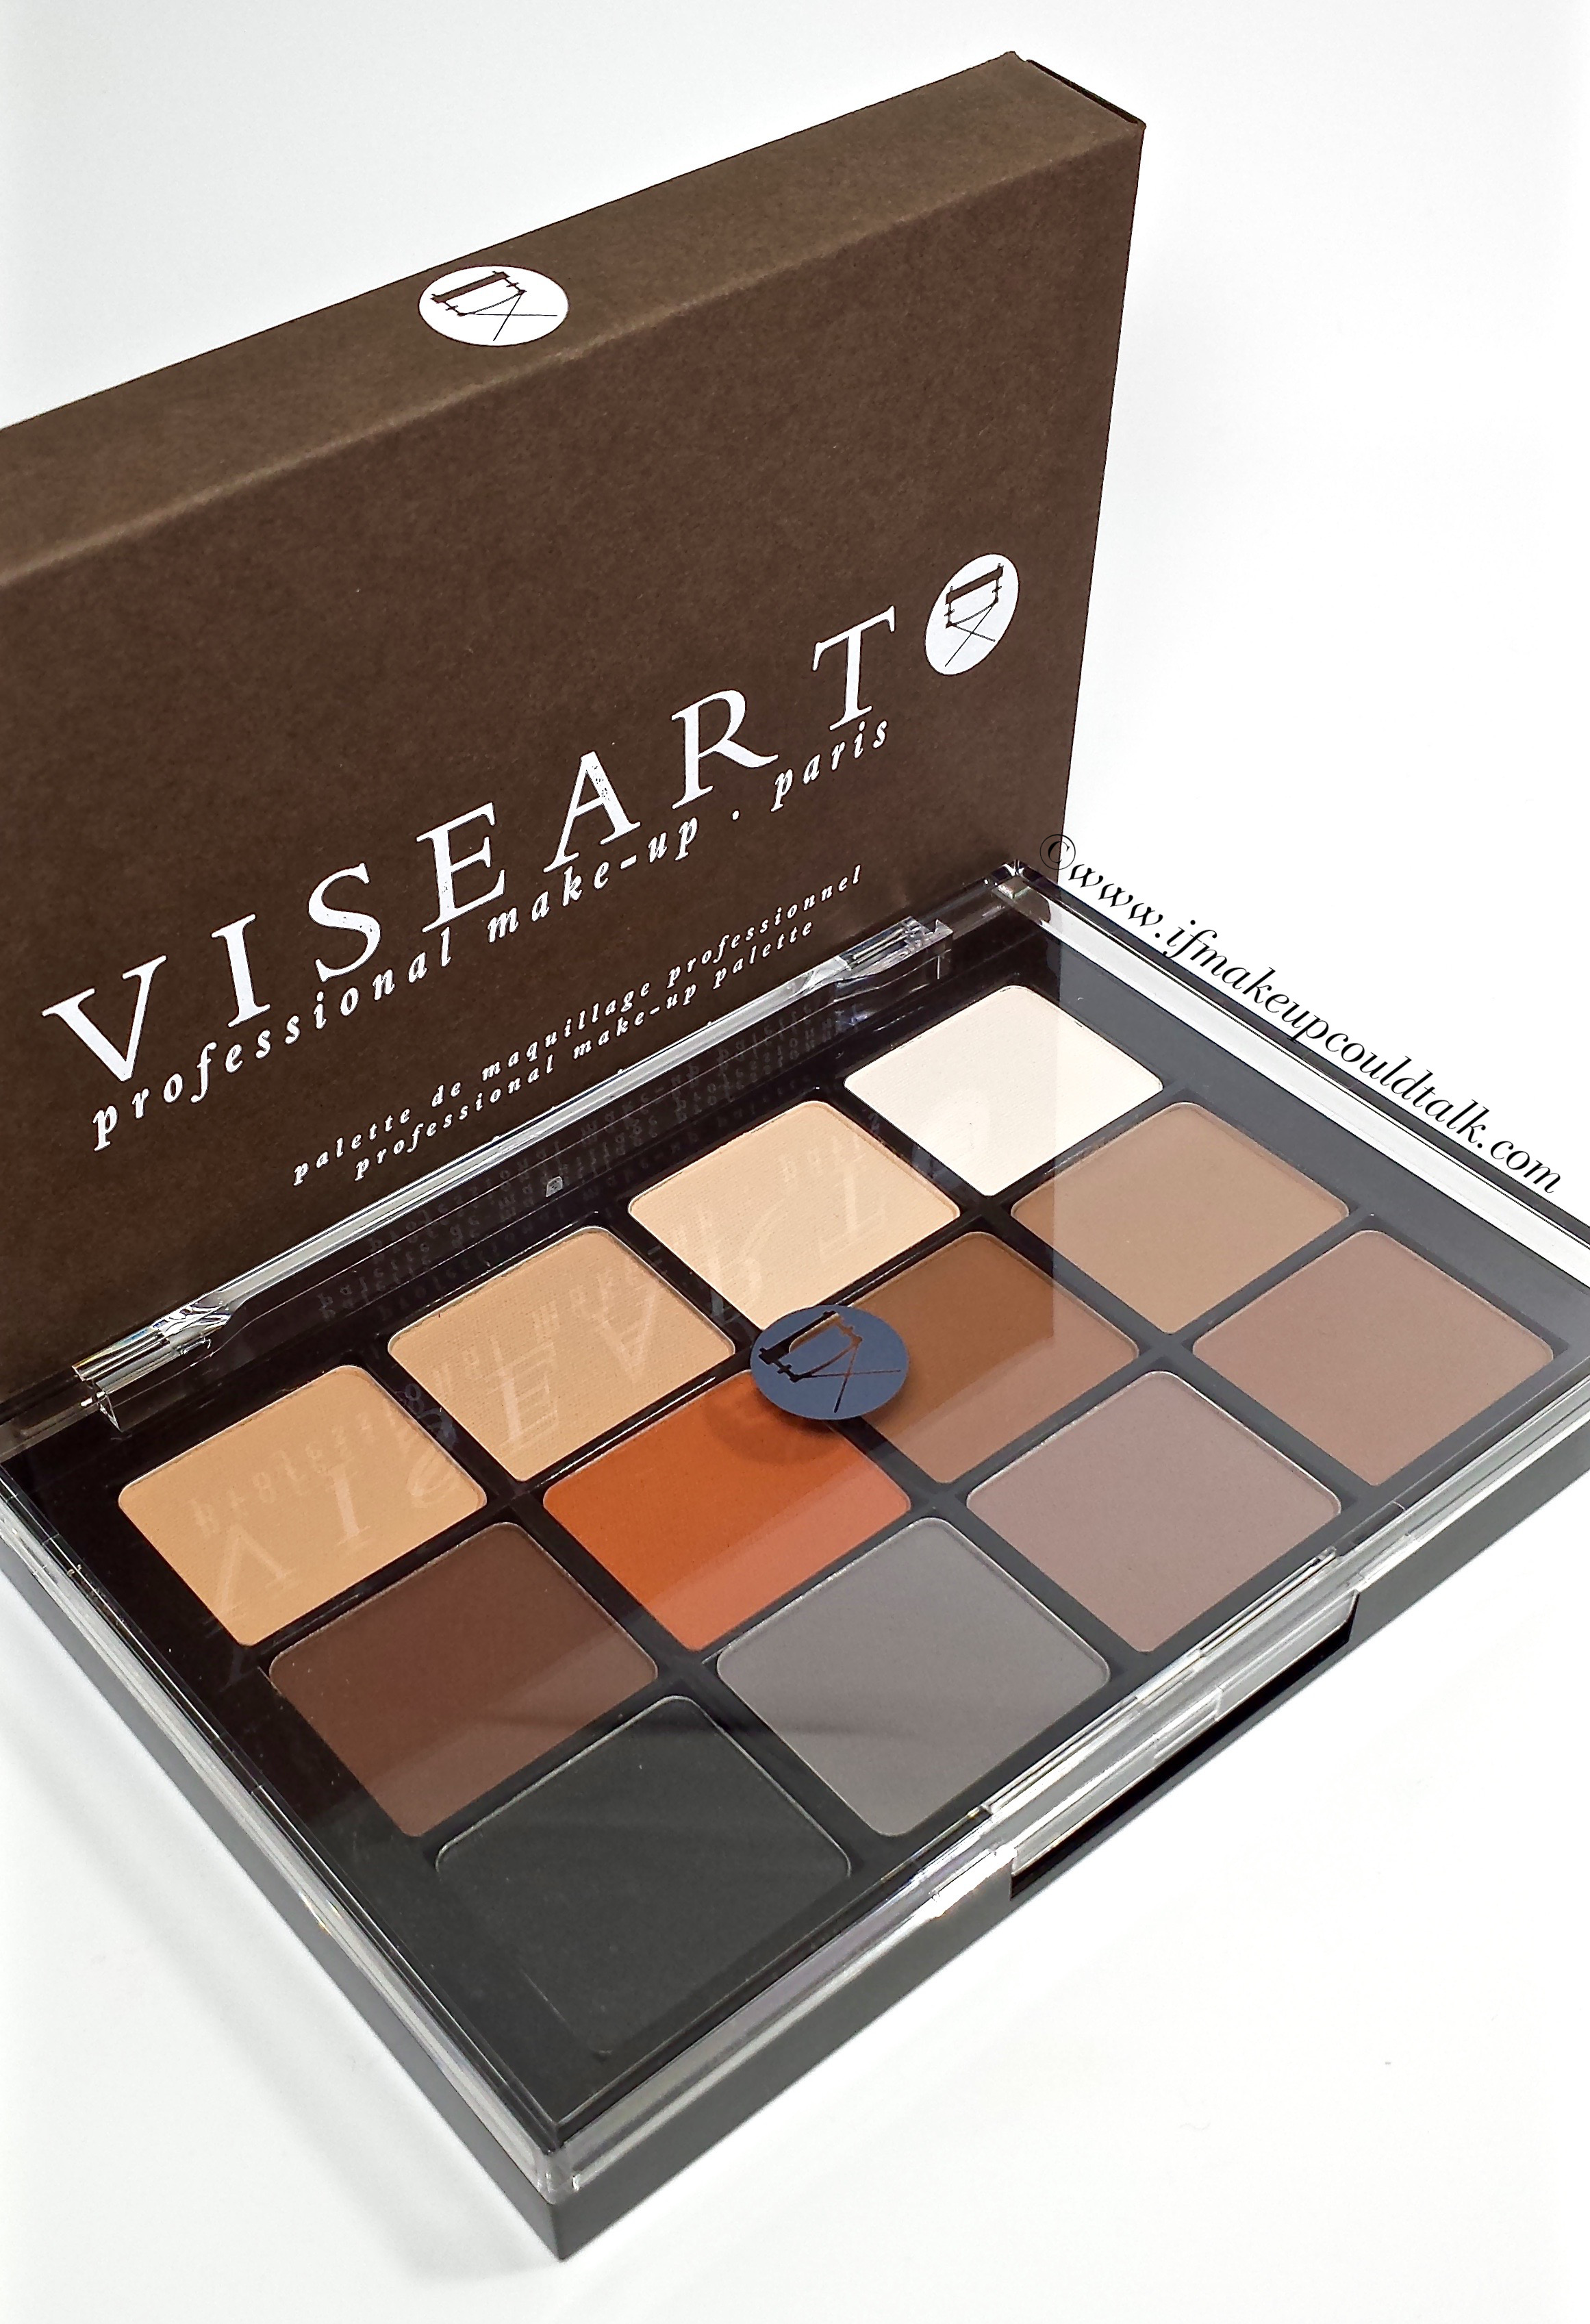 Viseart 01 Neutral Matte Eye Palette Review And Swatches If 06 Paris Nudes Makeup Could Talk